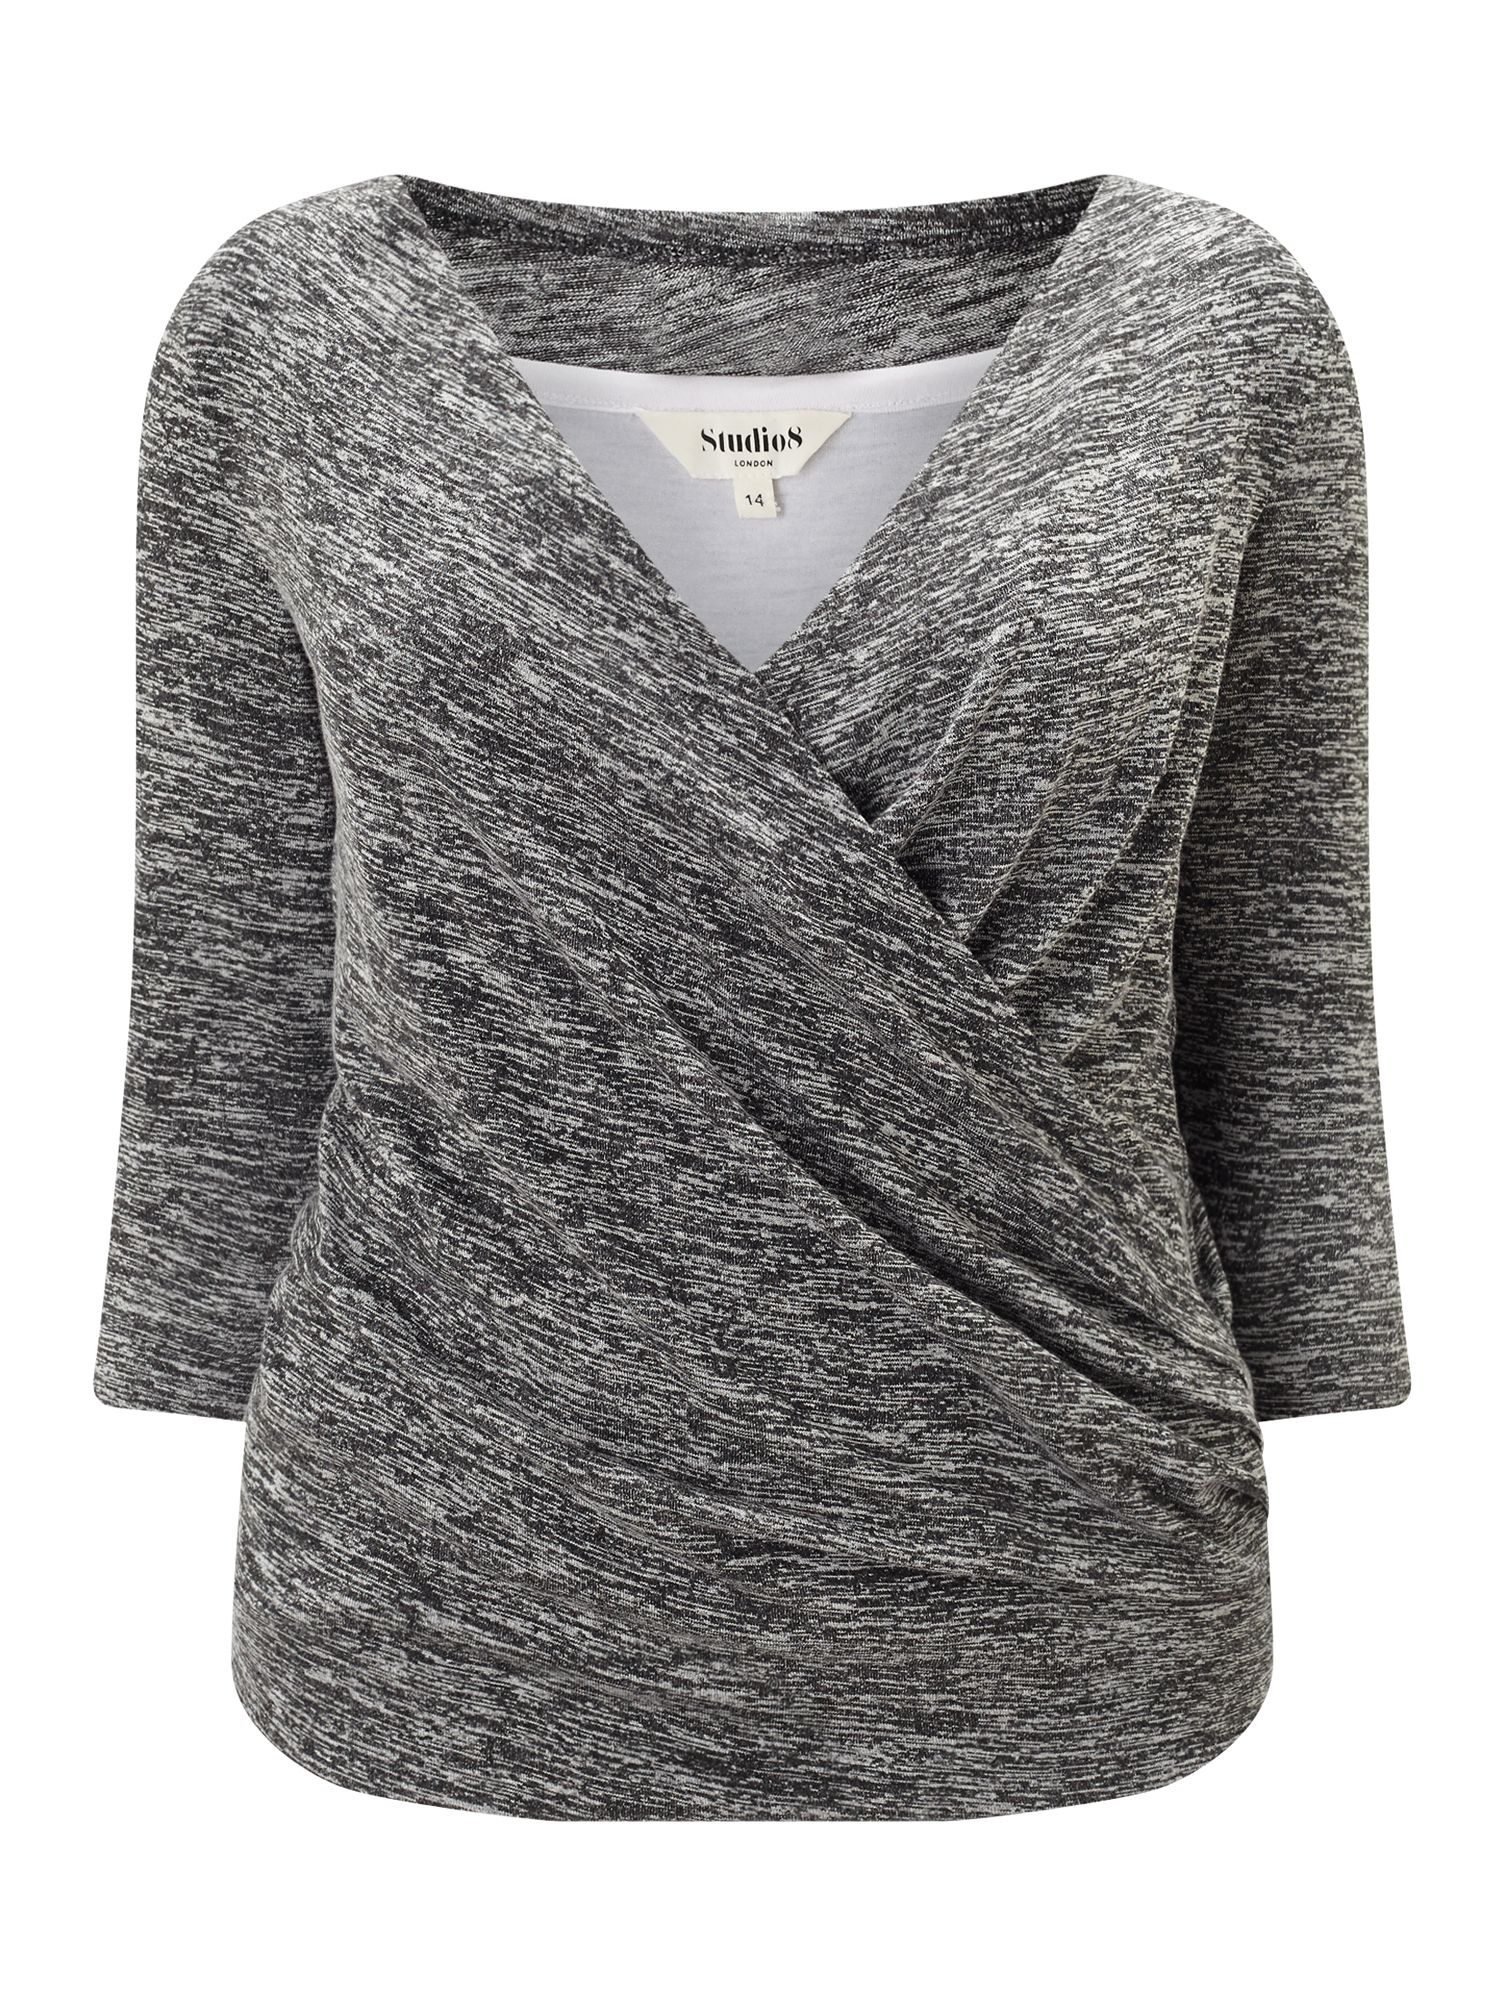 Studio 8 Tara Top, Grey Marl